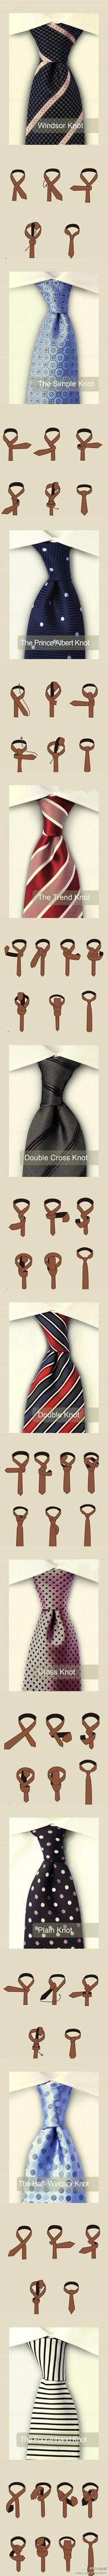 """How to #tie, """"tie knots"""" #Handsome Men With #Style"""